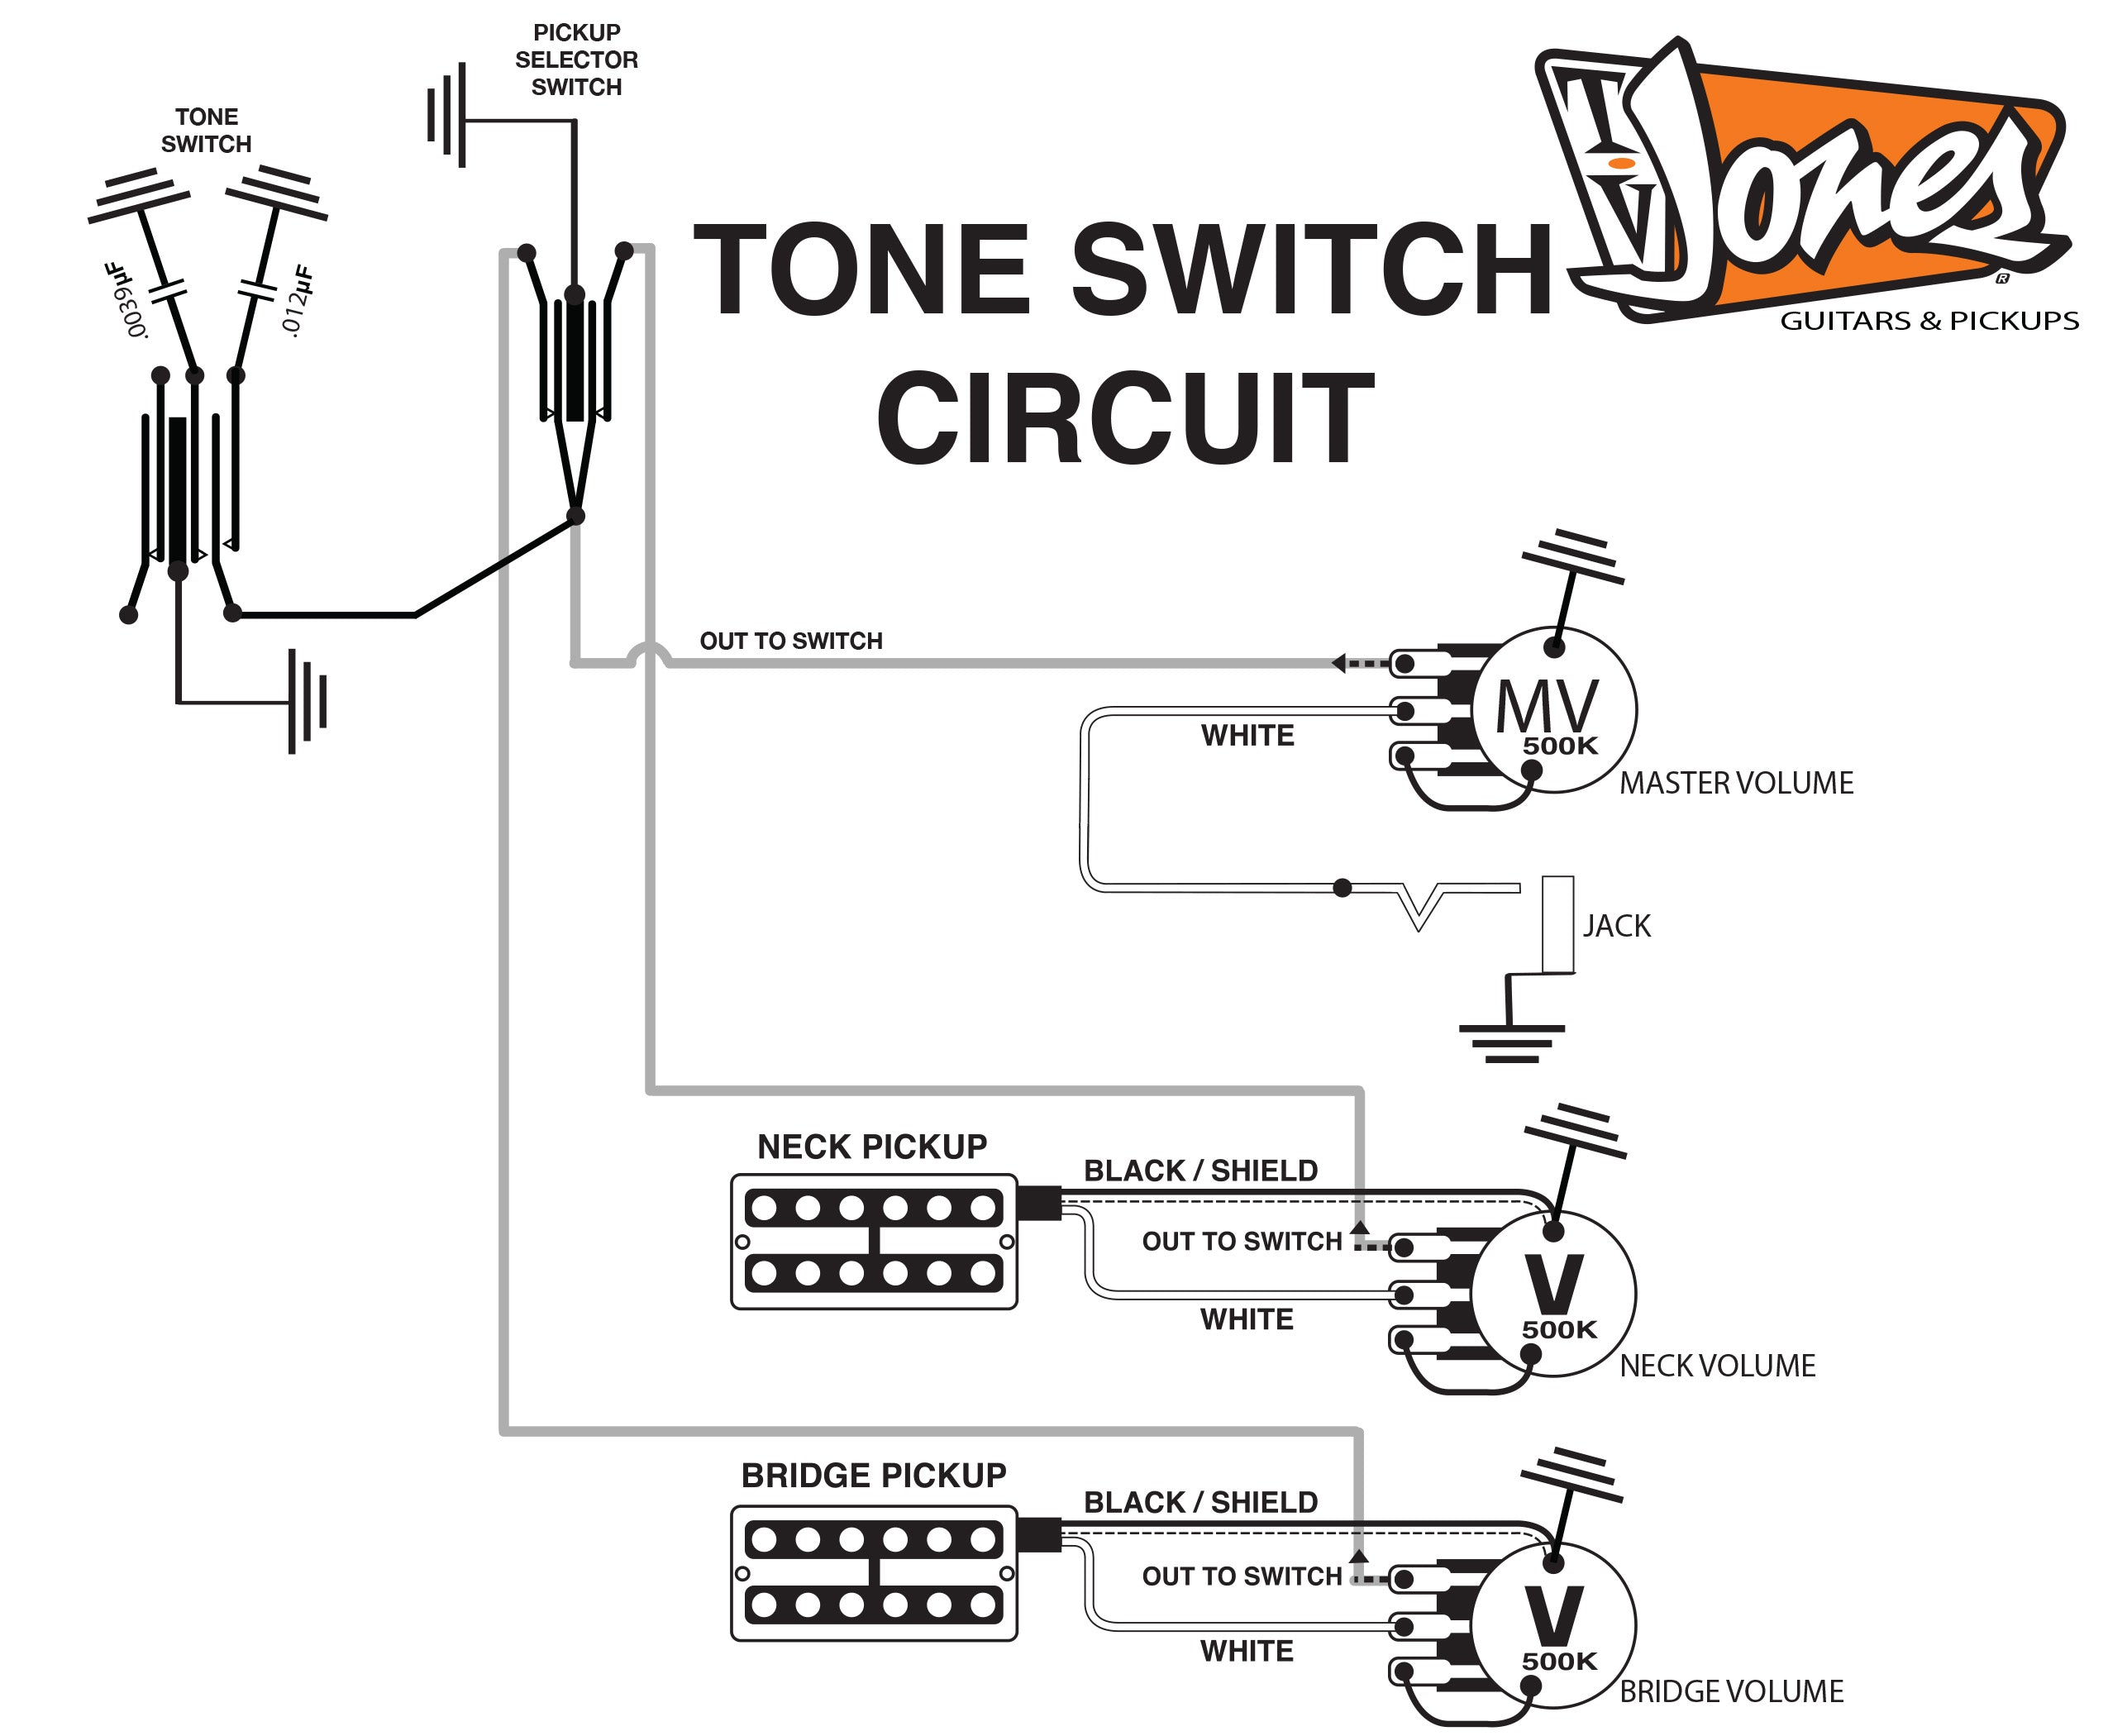 Gretsch Guitar Pick Up Wiring Diagrams | Wiring Diagram on 2 tone 1 volume bass diagram, toggle with 1 pickup wiring diagram, humbucker pickup wiring diagram,